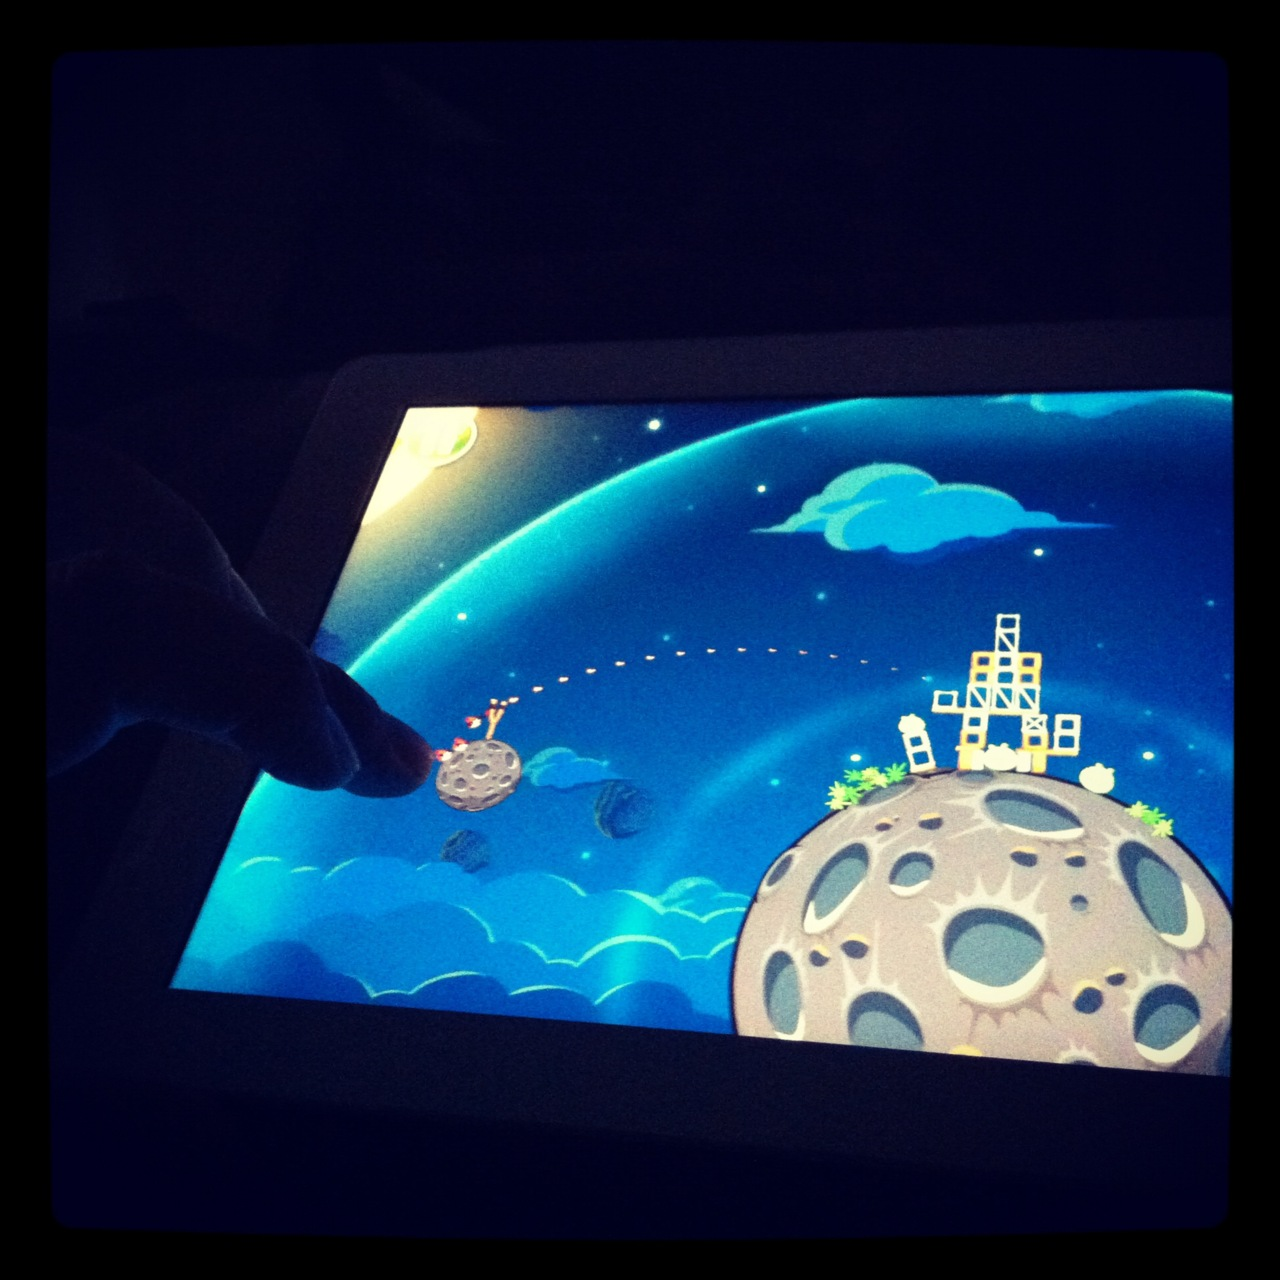 I've sorta stayed away from the Angry Bird craze in recent years, but opted to download and play Birds/Space because it seemed like a good game for the iPad. It is by the way.